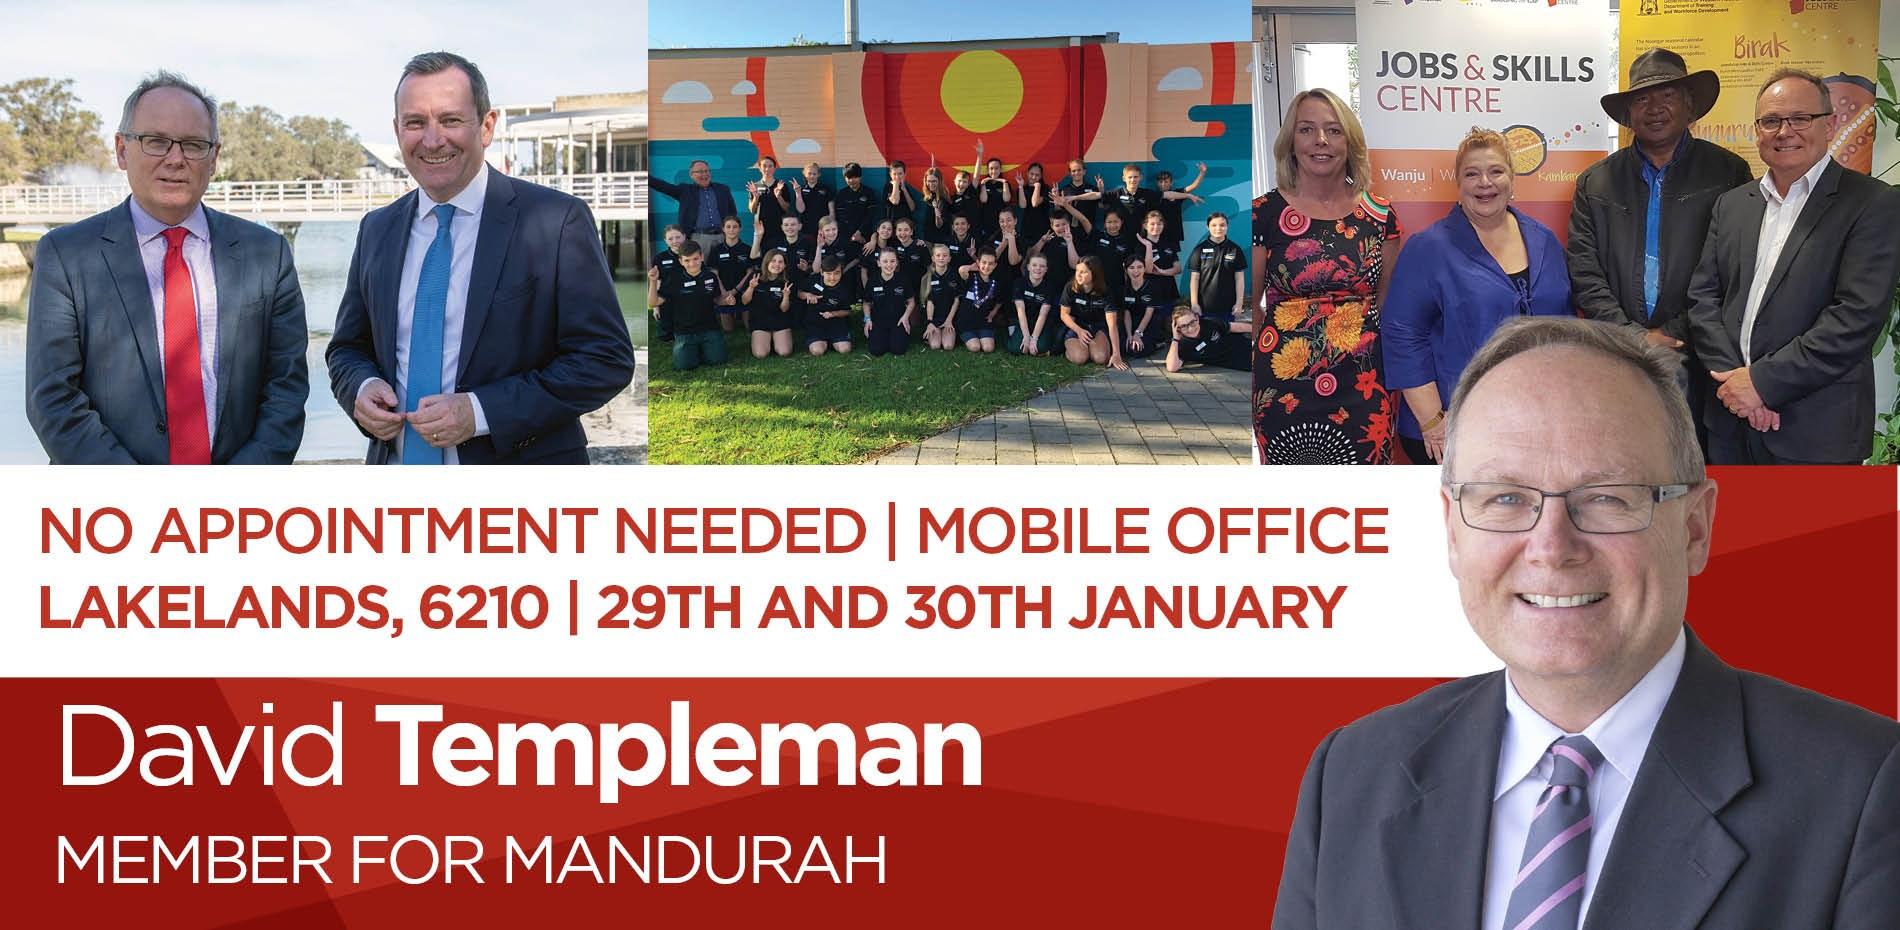 Lakelands Mobile Office - No Appointment Needed! Main Image